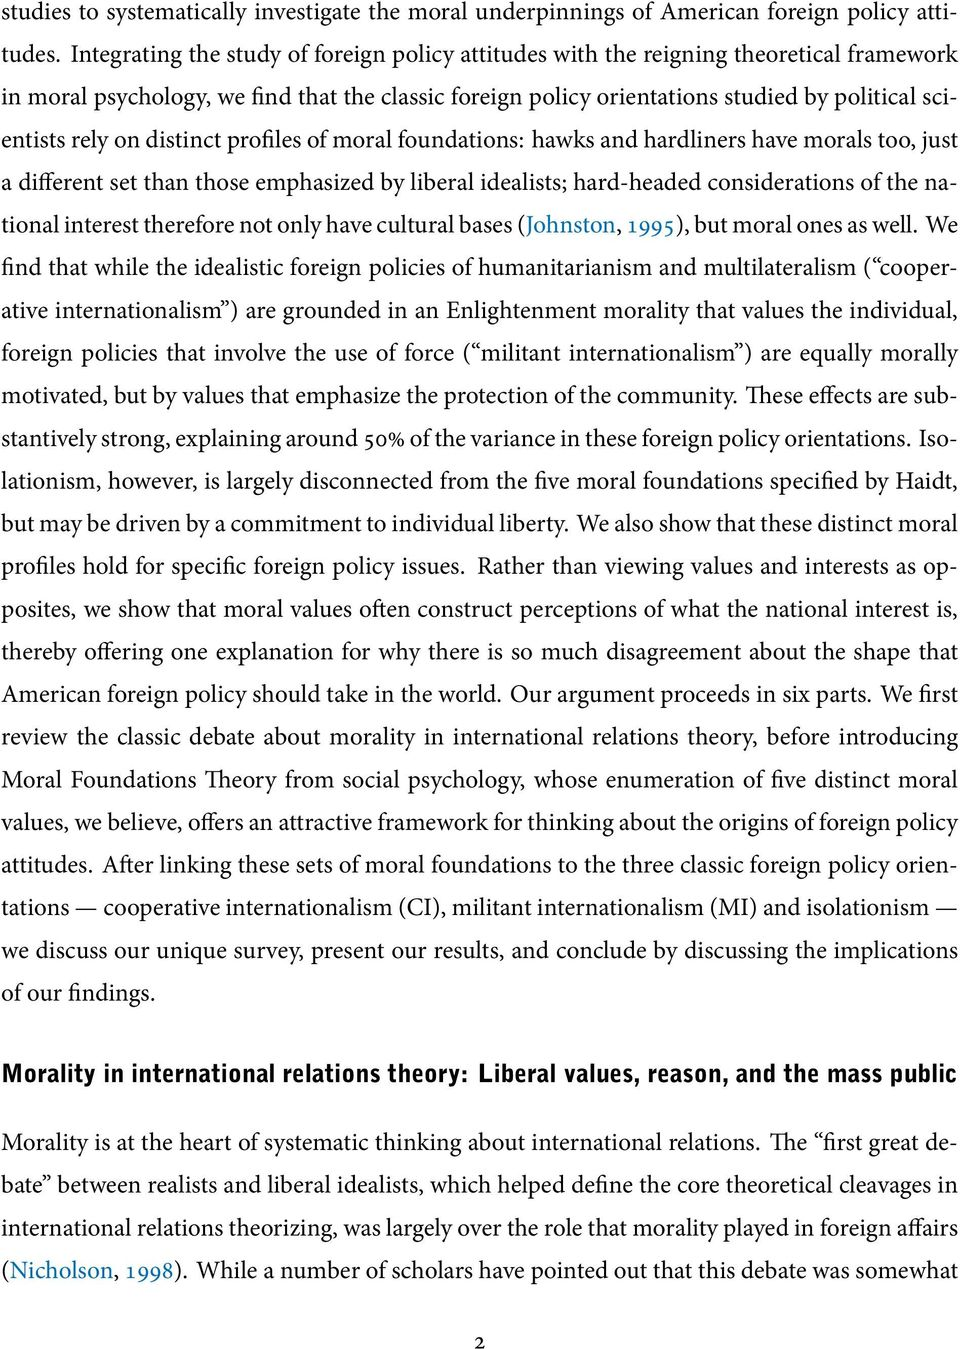 rely on distinct profiles of moral foundations: hawks and hardliners have morals too, just a different set than those emphasized by liberal idealists; hard-headed considerations of the national